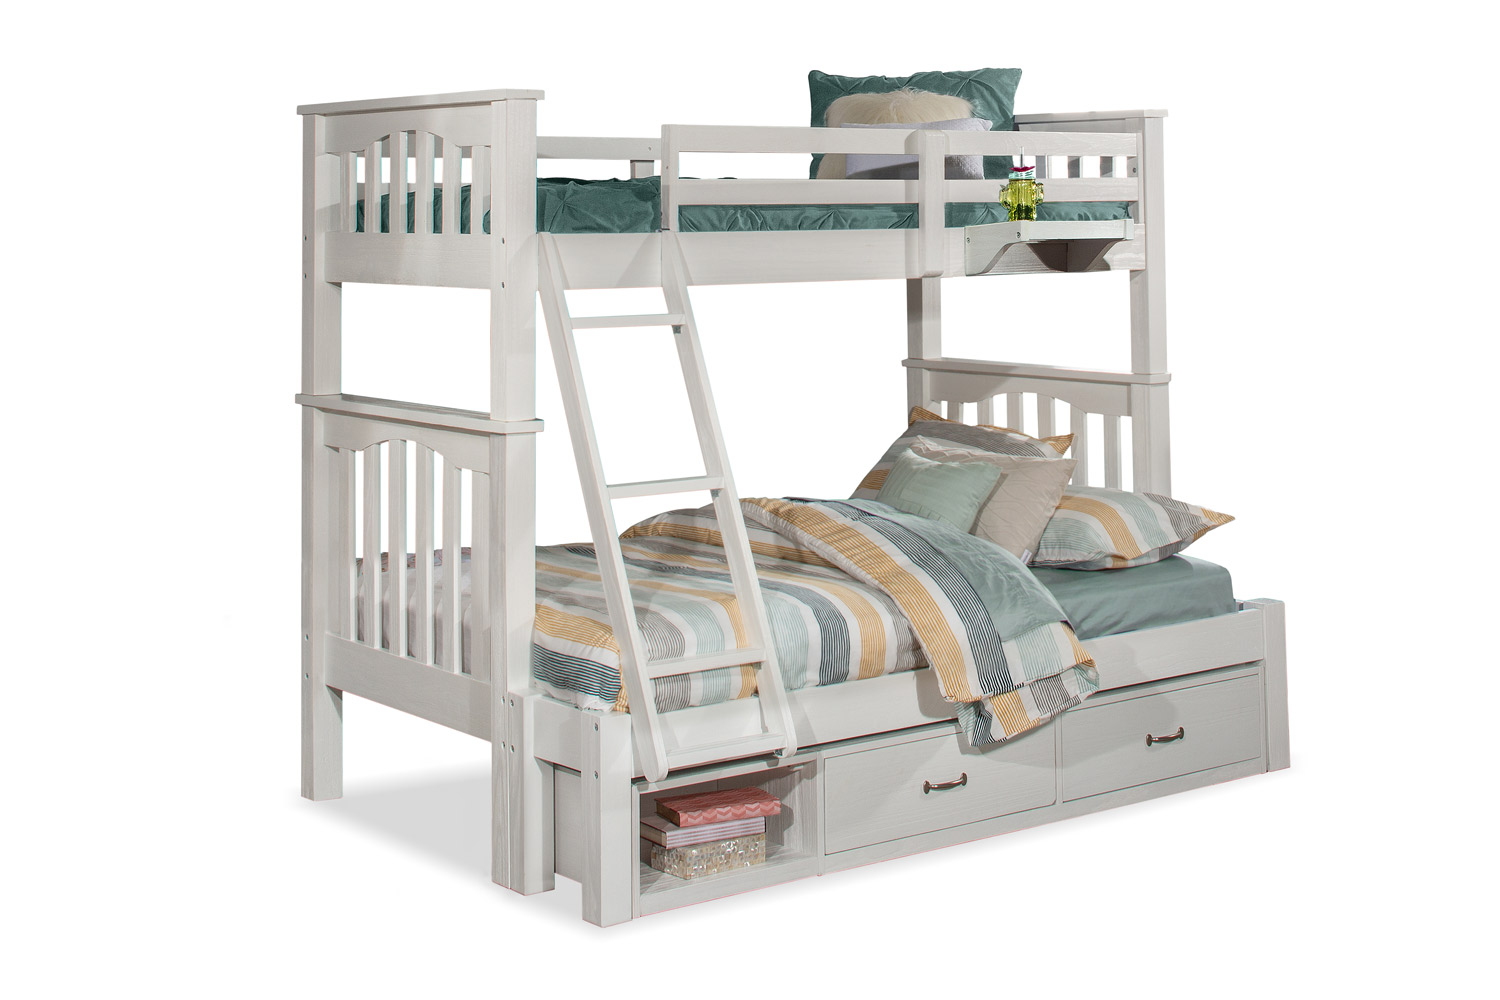 NE Kids Highlands Harper Twin/Full Bunk Bed with Storage Unit and Hanging Nightstand - White Finish